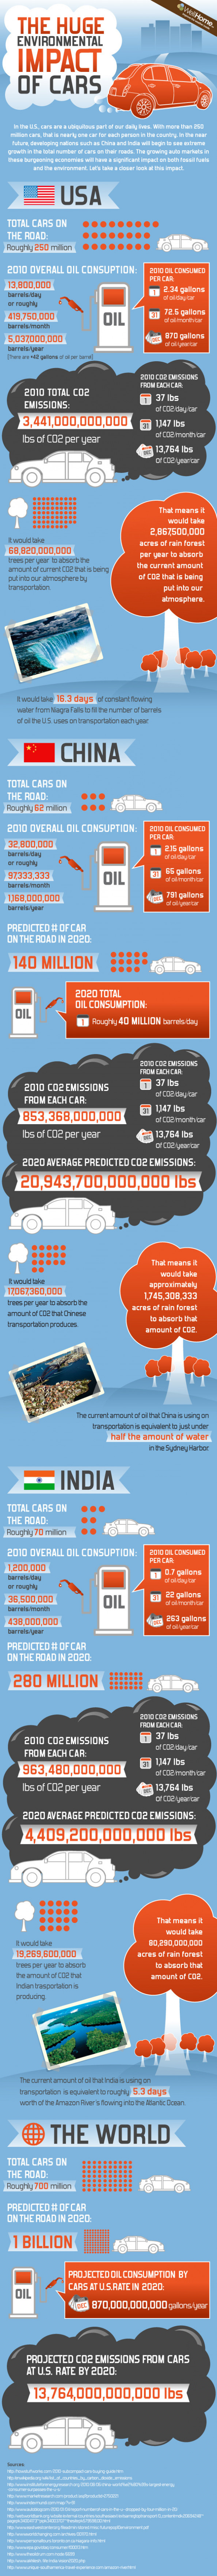 The Huge Environmental Impact of Cars  Infographic